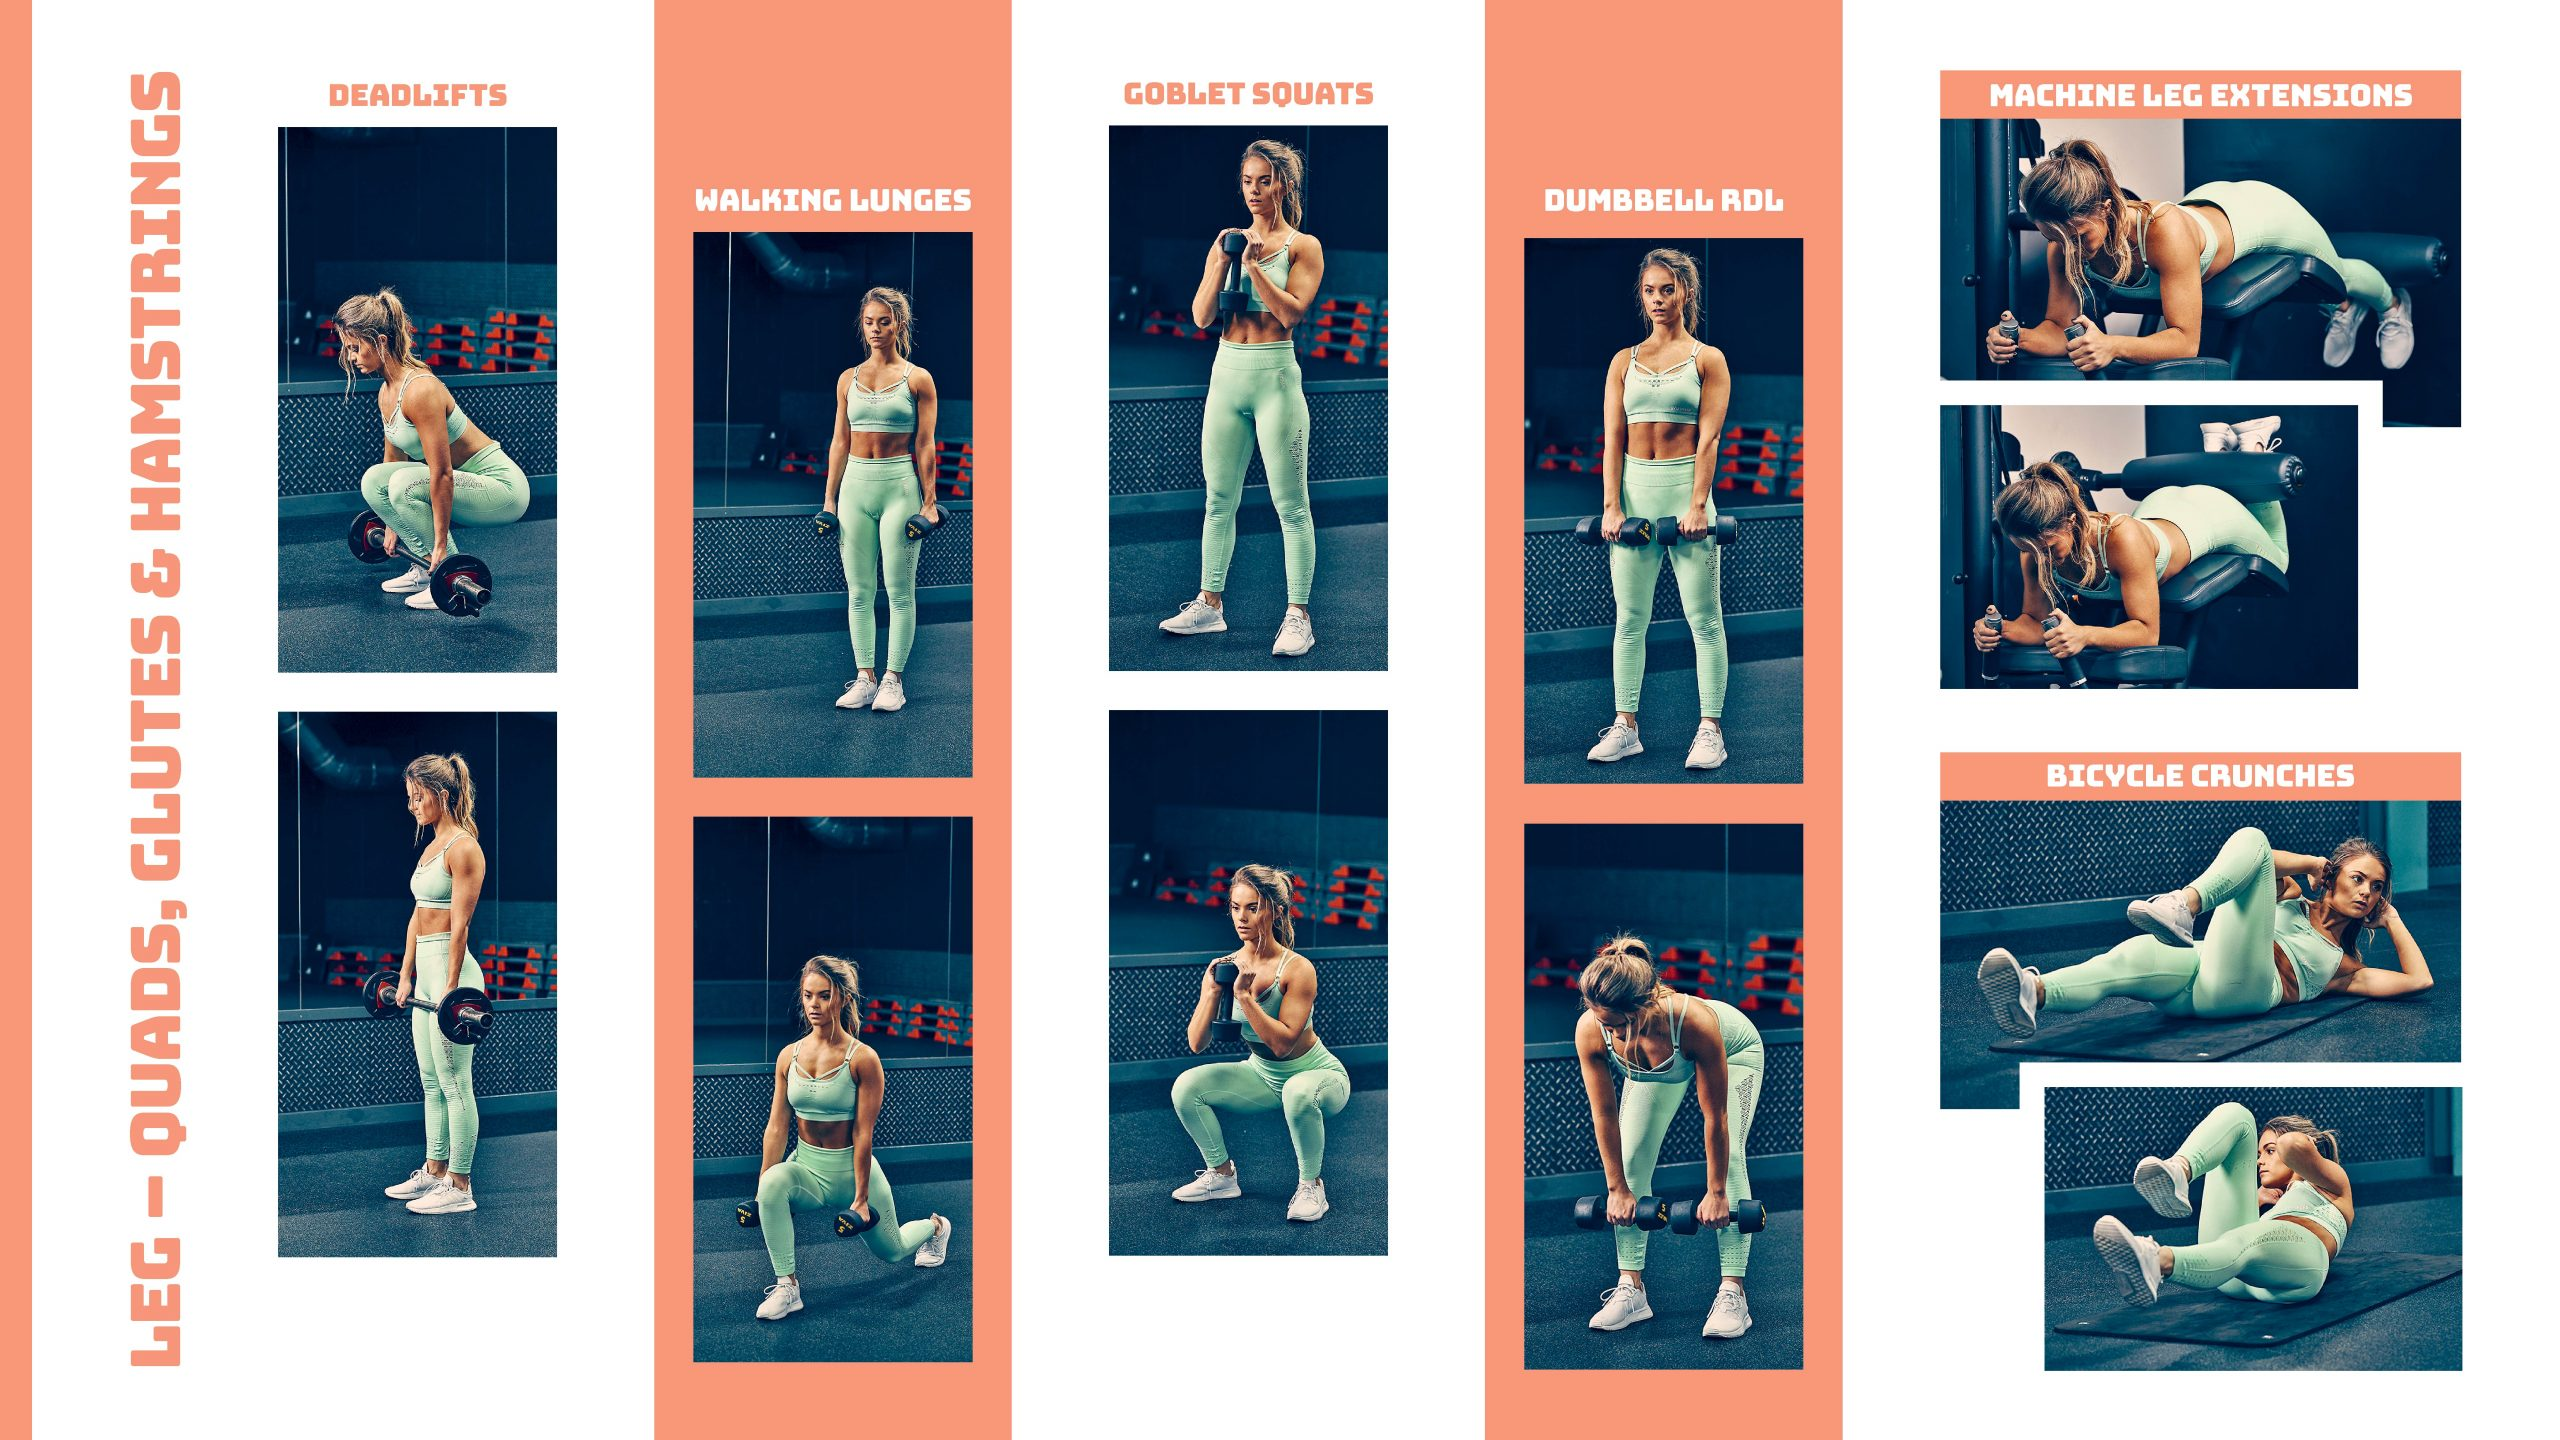 LEG WORKOUT STEFANIE MOIR NATURALLY STEFANIE QUADS GLUTES HAMSTRINGS